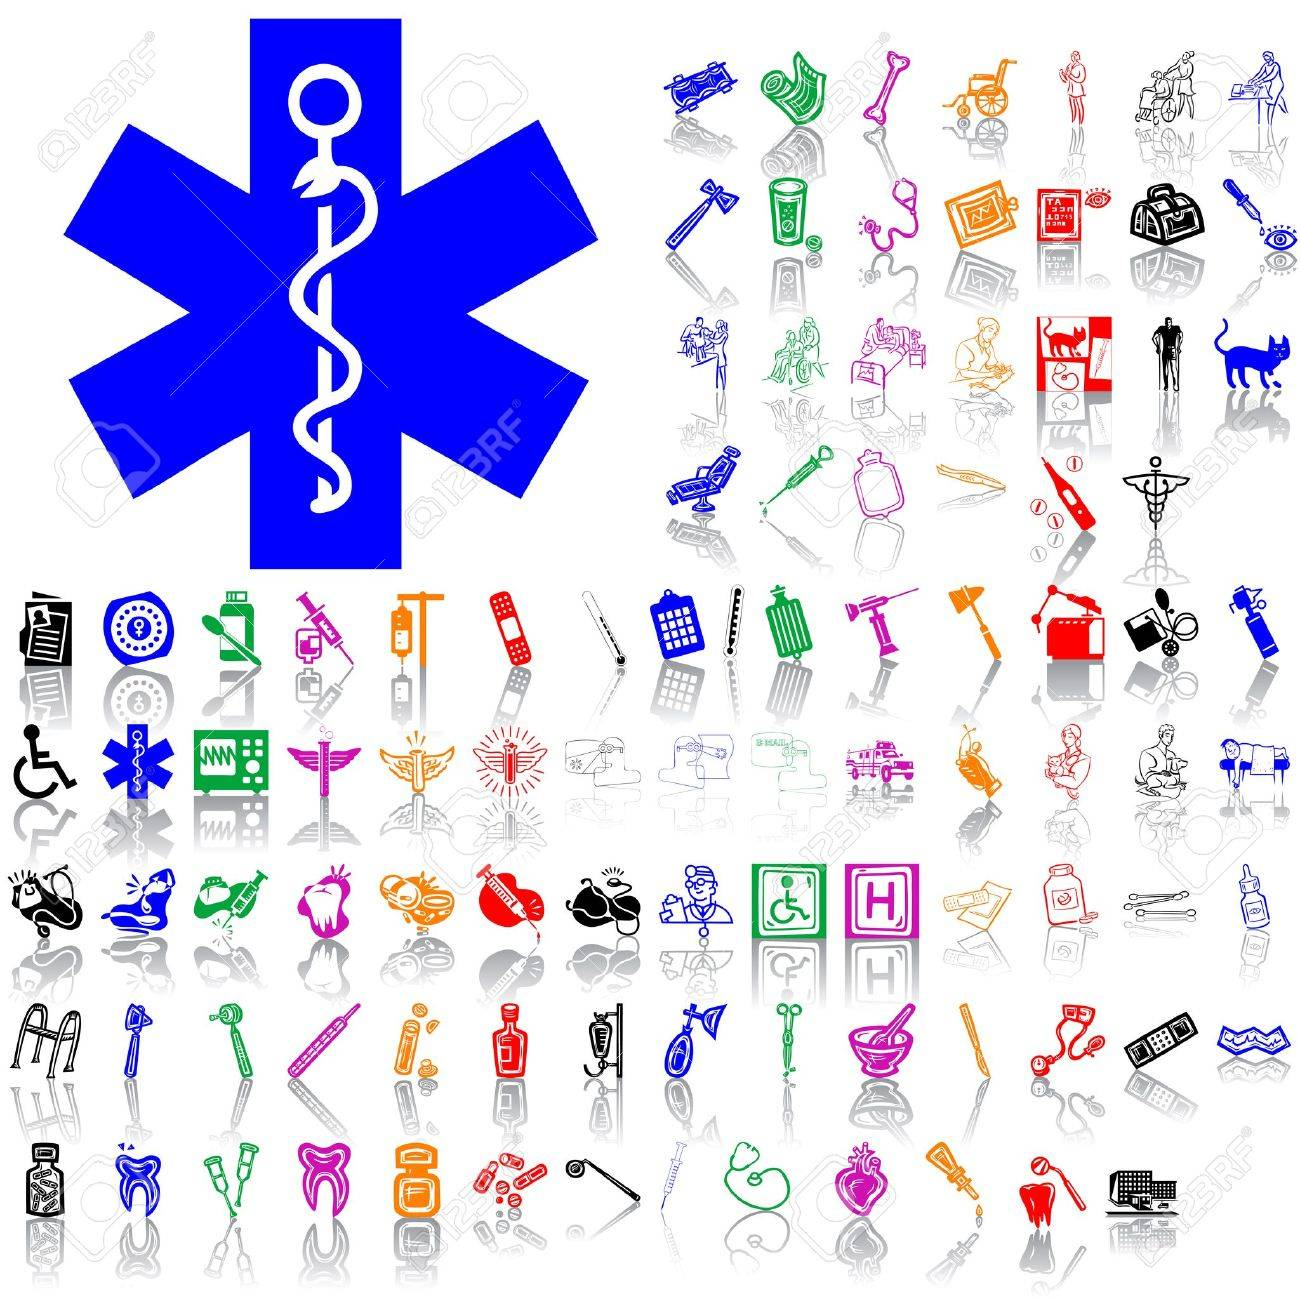 Set of medical sketches. Part 9. Isolated groups and layers. Global colors. Stock Vector - 5141003